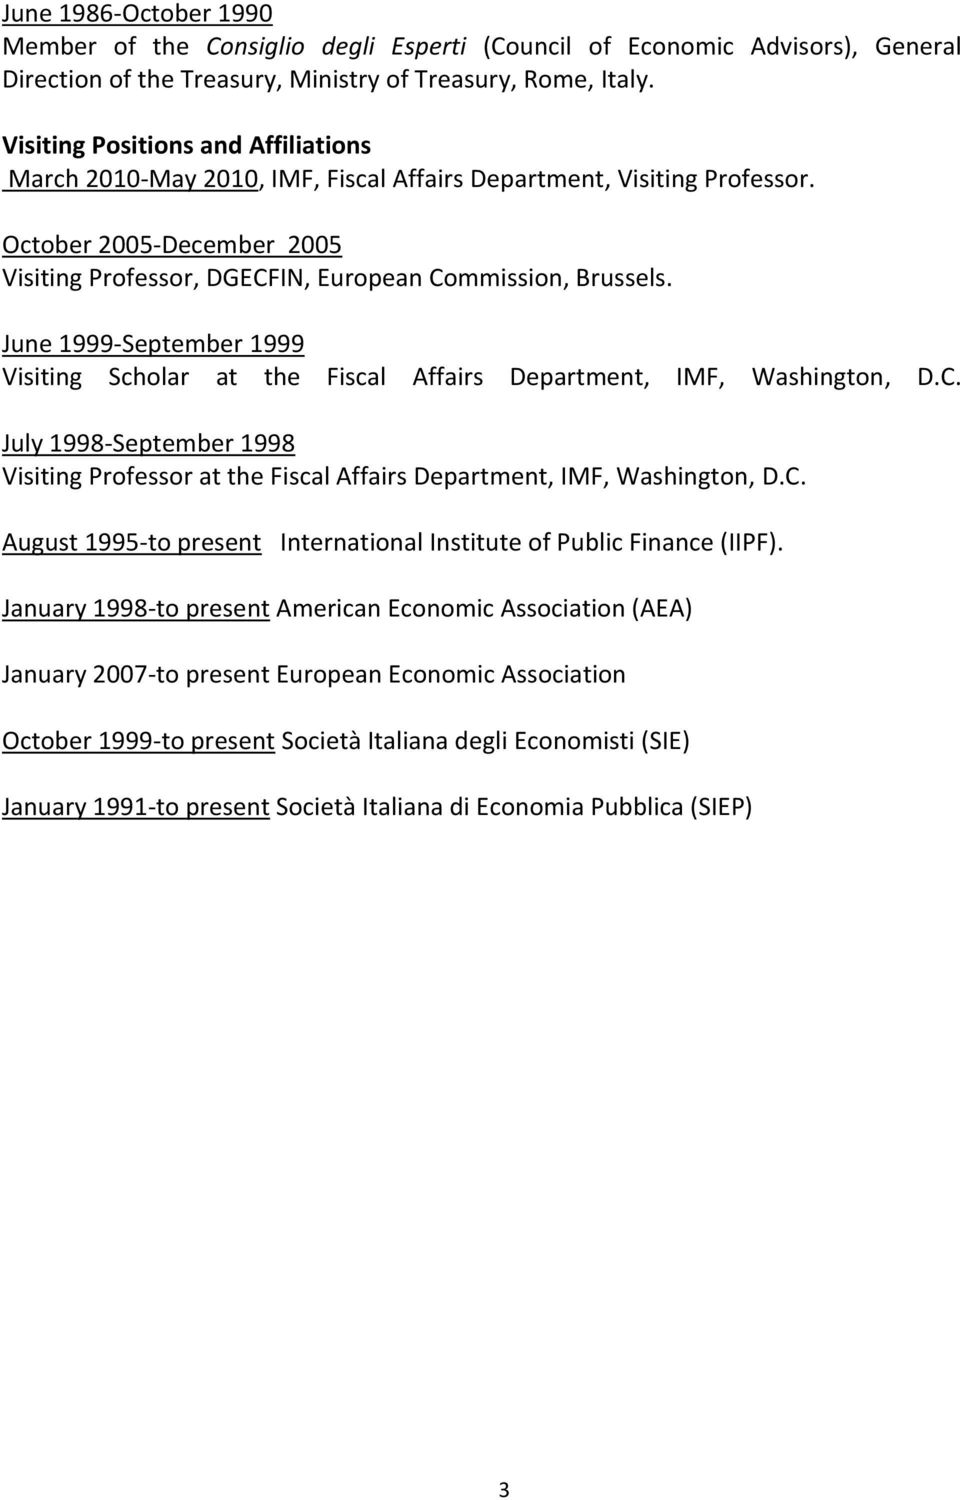 June 1999-September 1999 Visiting Scholar at the Fiscal Affairs Department, IMF, Washington, D.C. July 1998-September 1998 Visiting Professor at the Fiscal Affairs Department, IMF, Washington, D.C. August 1995-to present International Institute of Public Finance (IIPF).